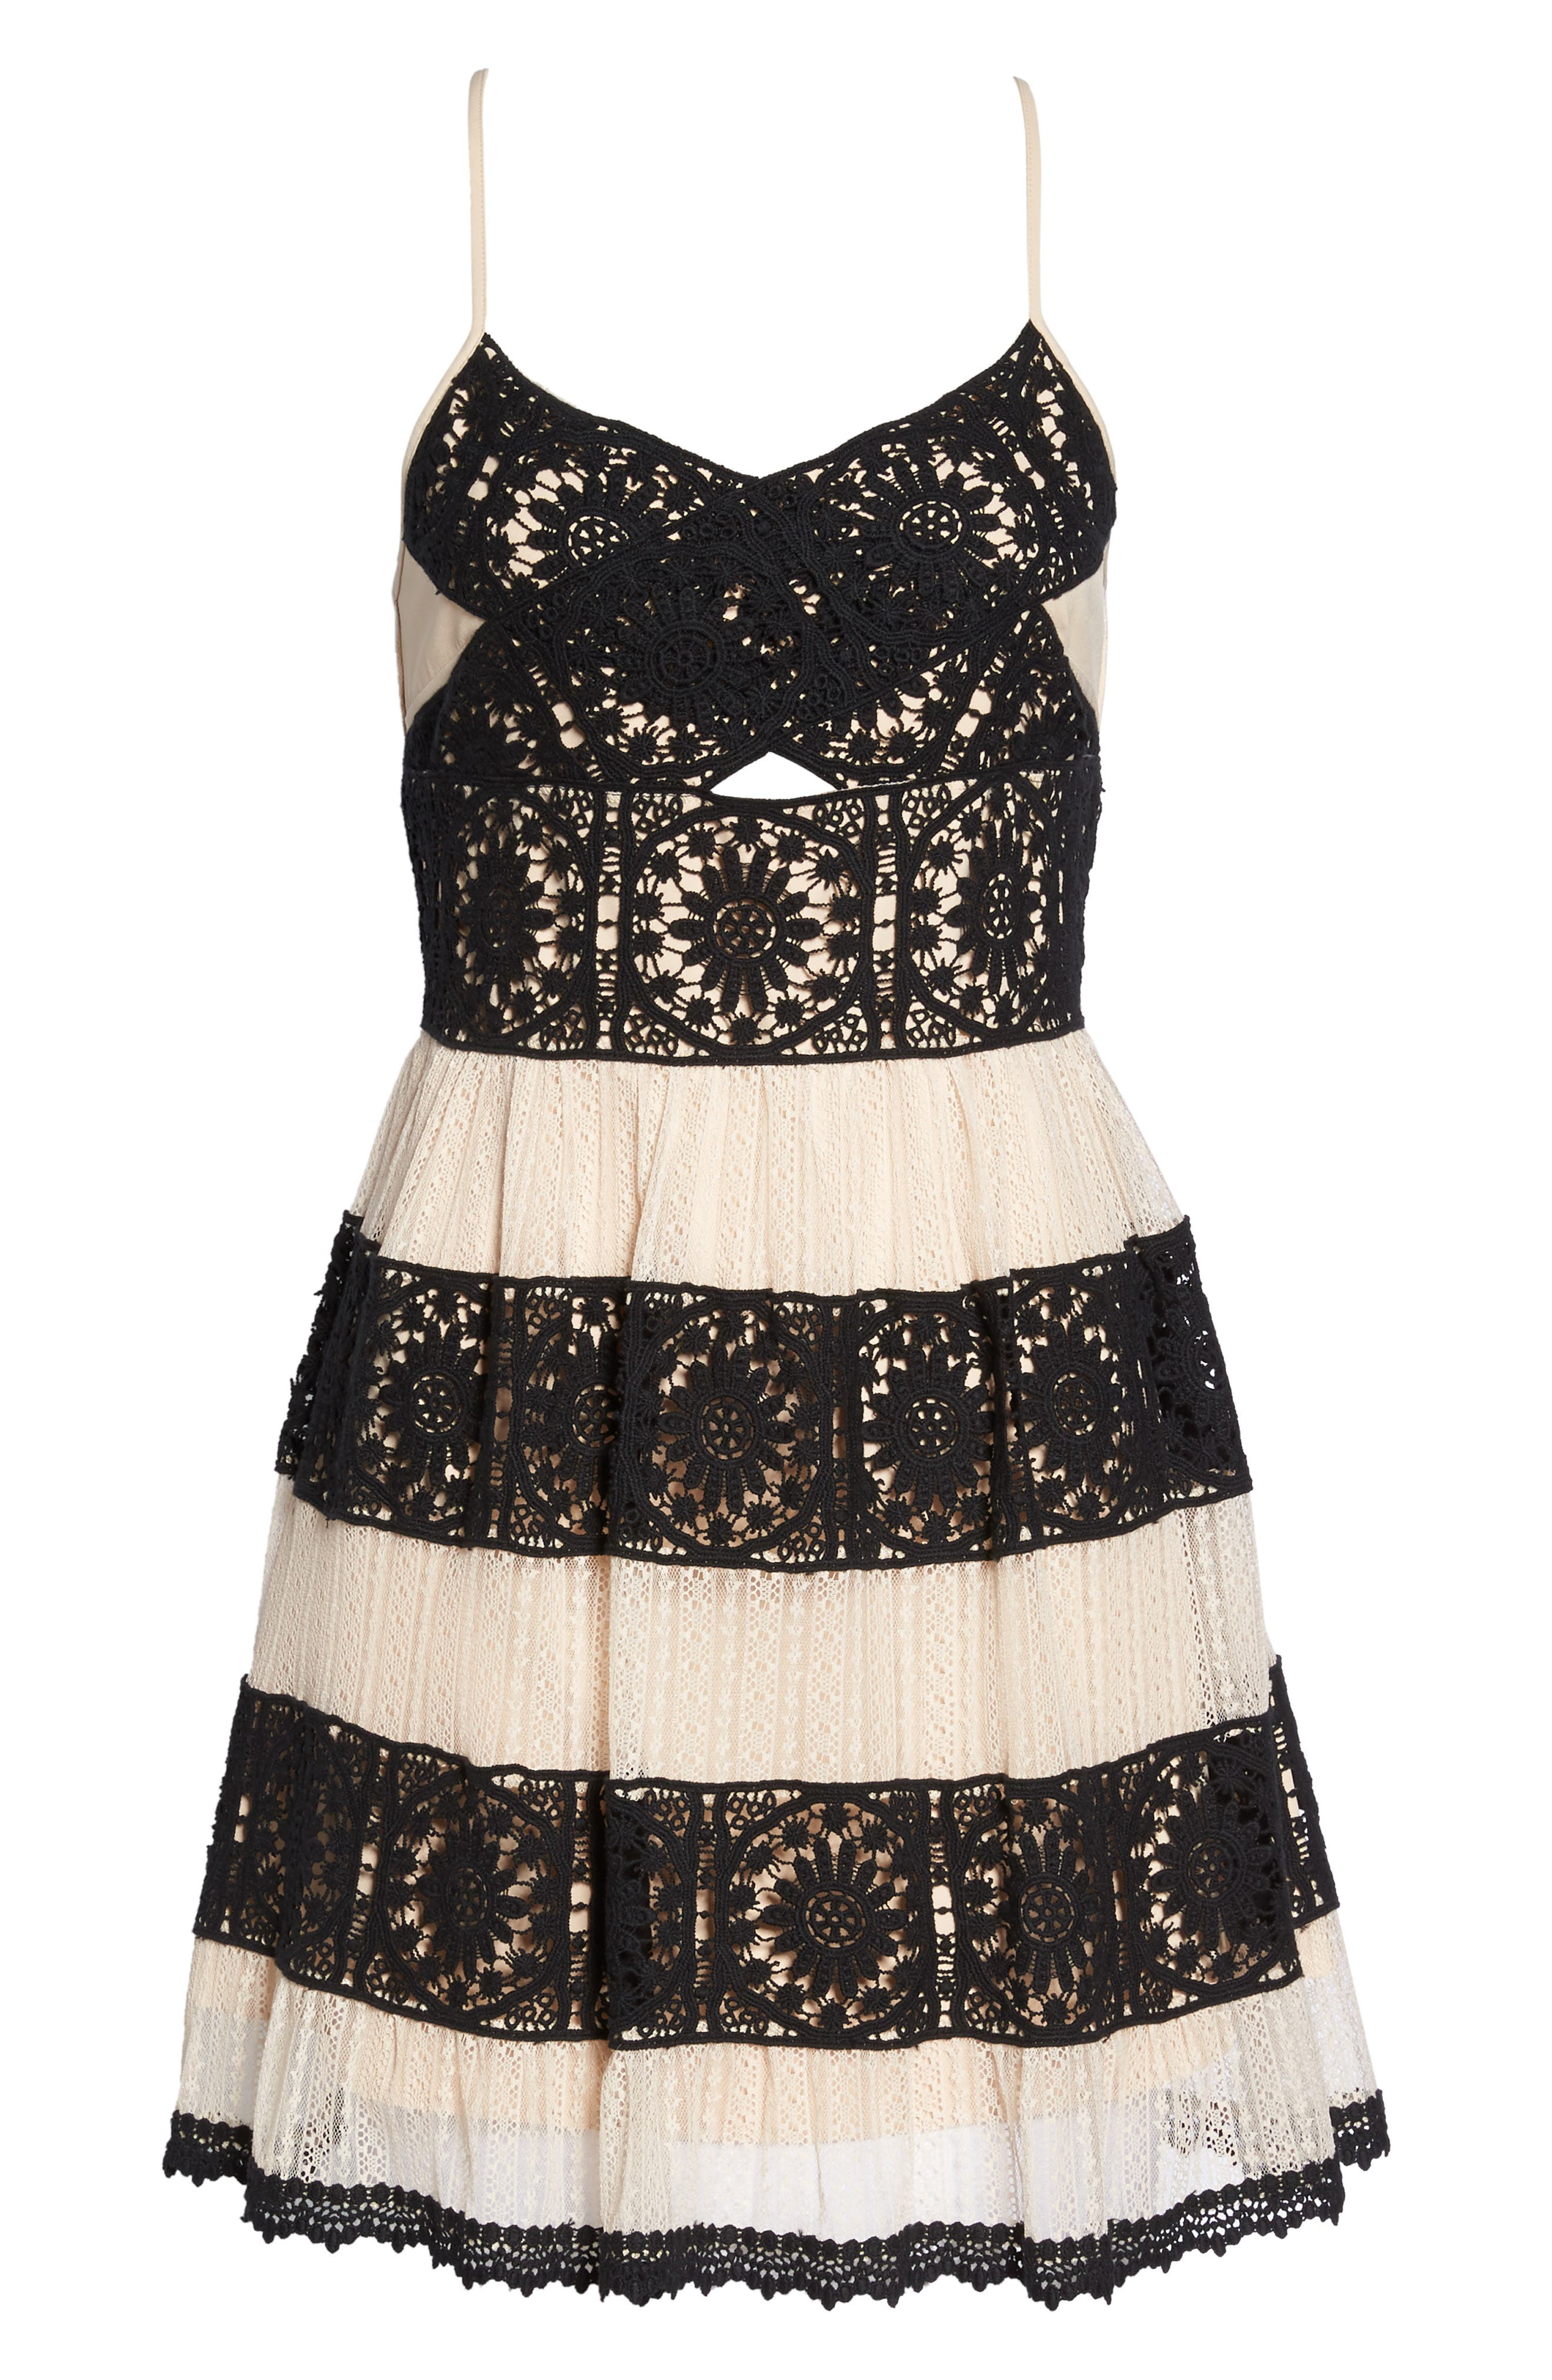 Ophelia Two-Tone Lace Fit & Flare Dress,                             Alternate thumbnail 6, color,                             001